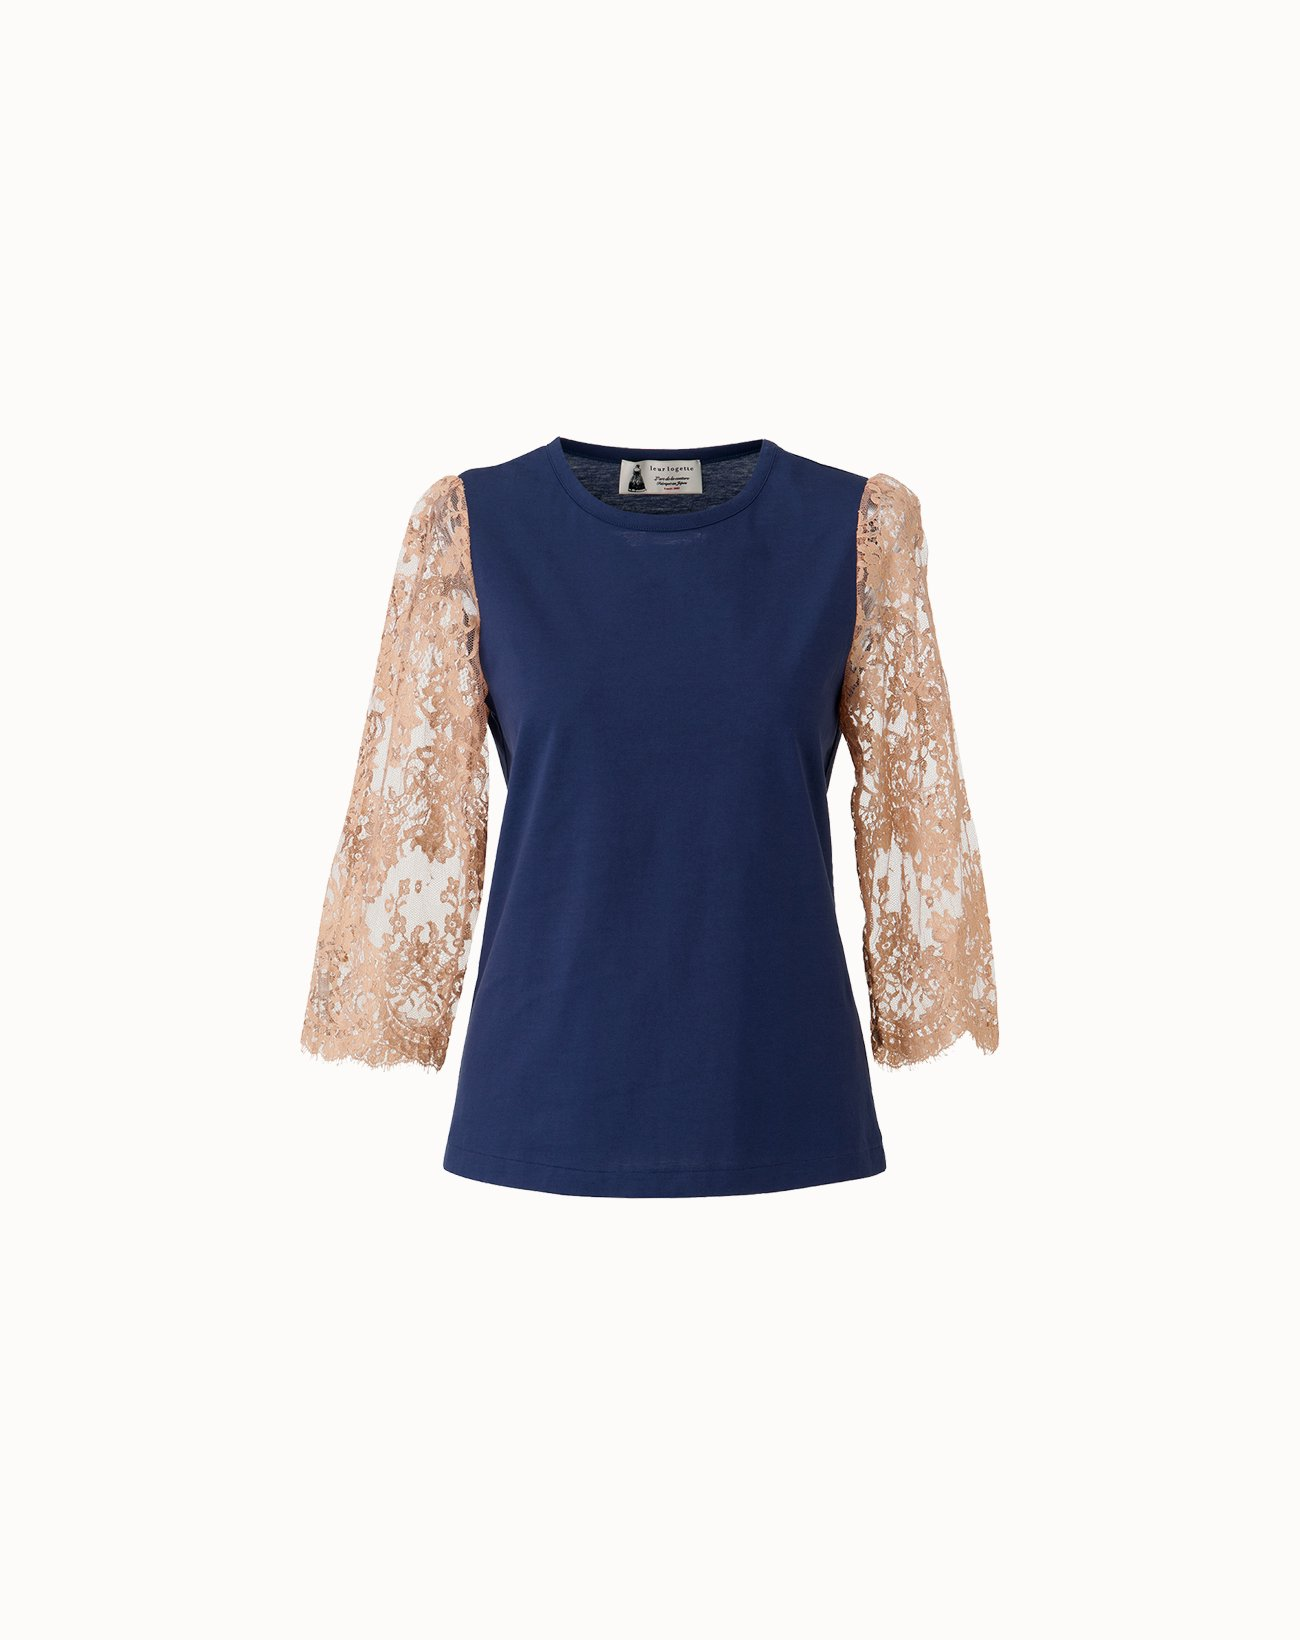 leur logette - Compact Cotton Sleeve Lace Top - Navy